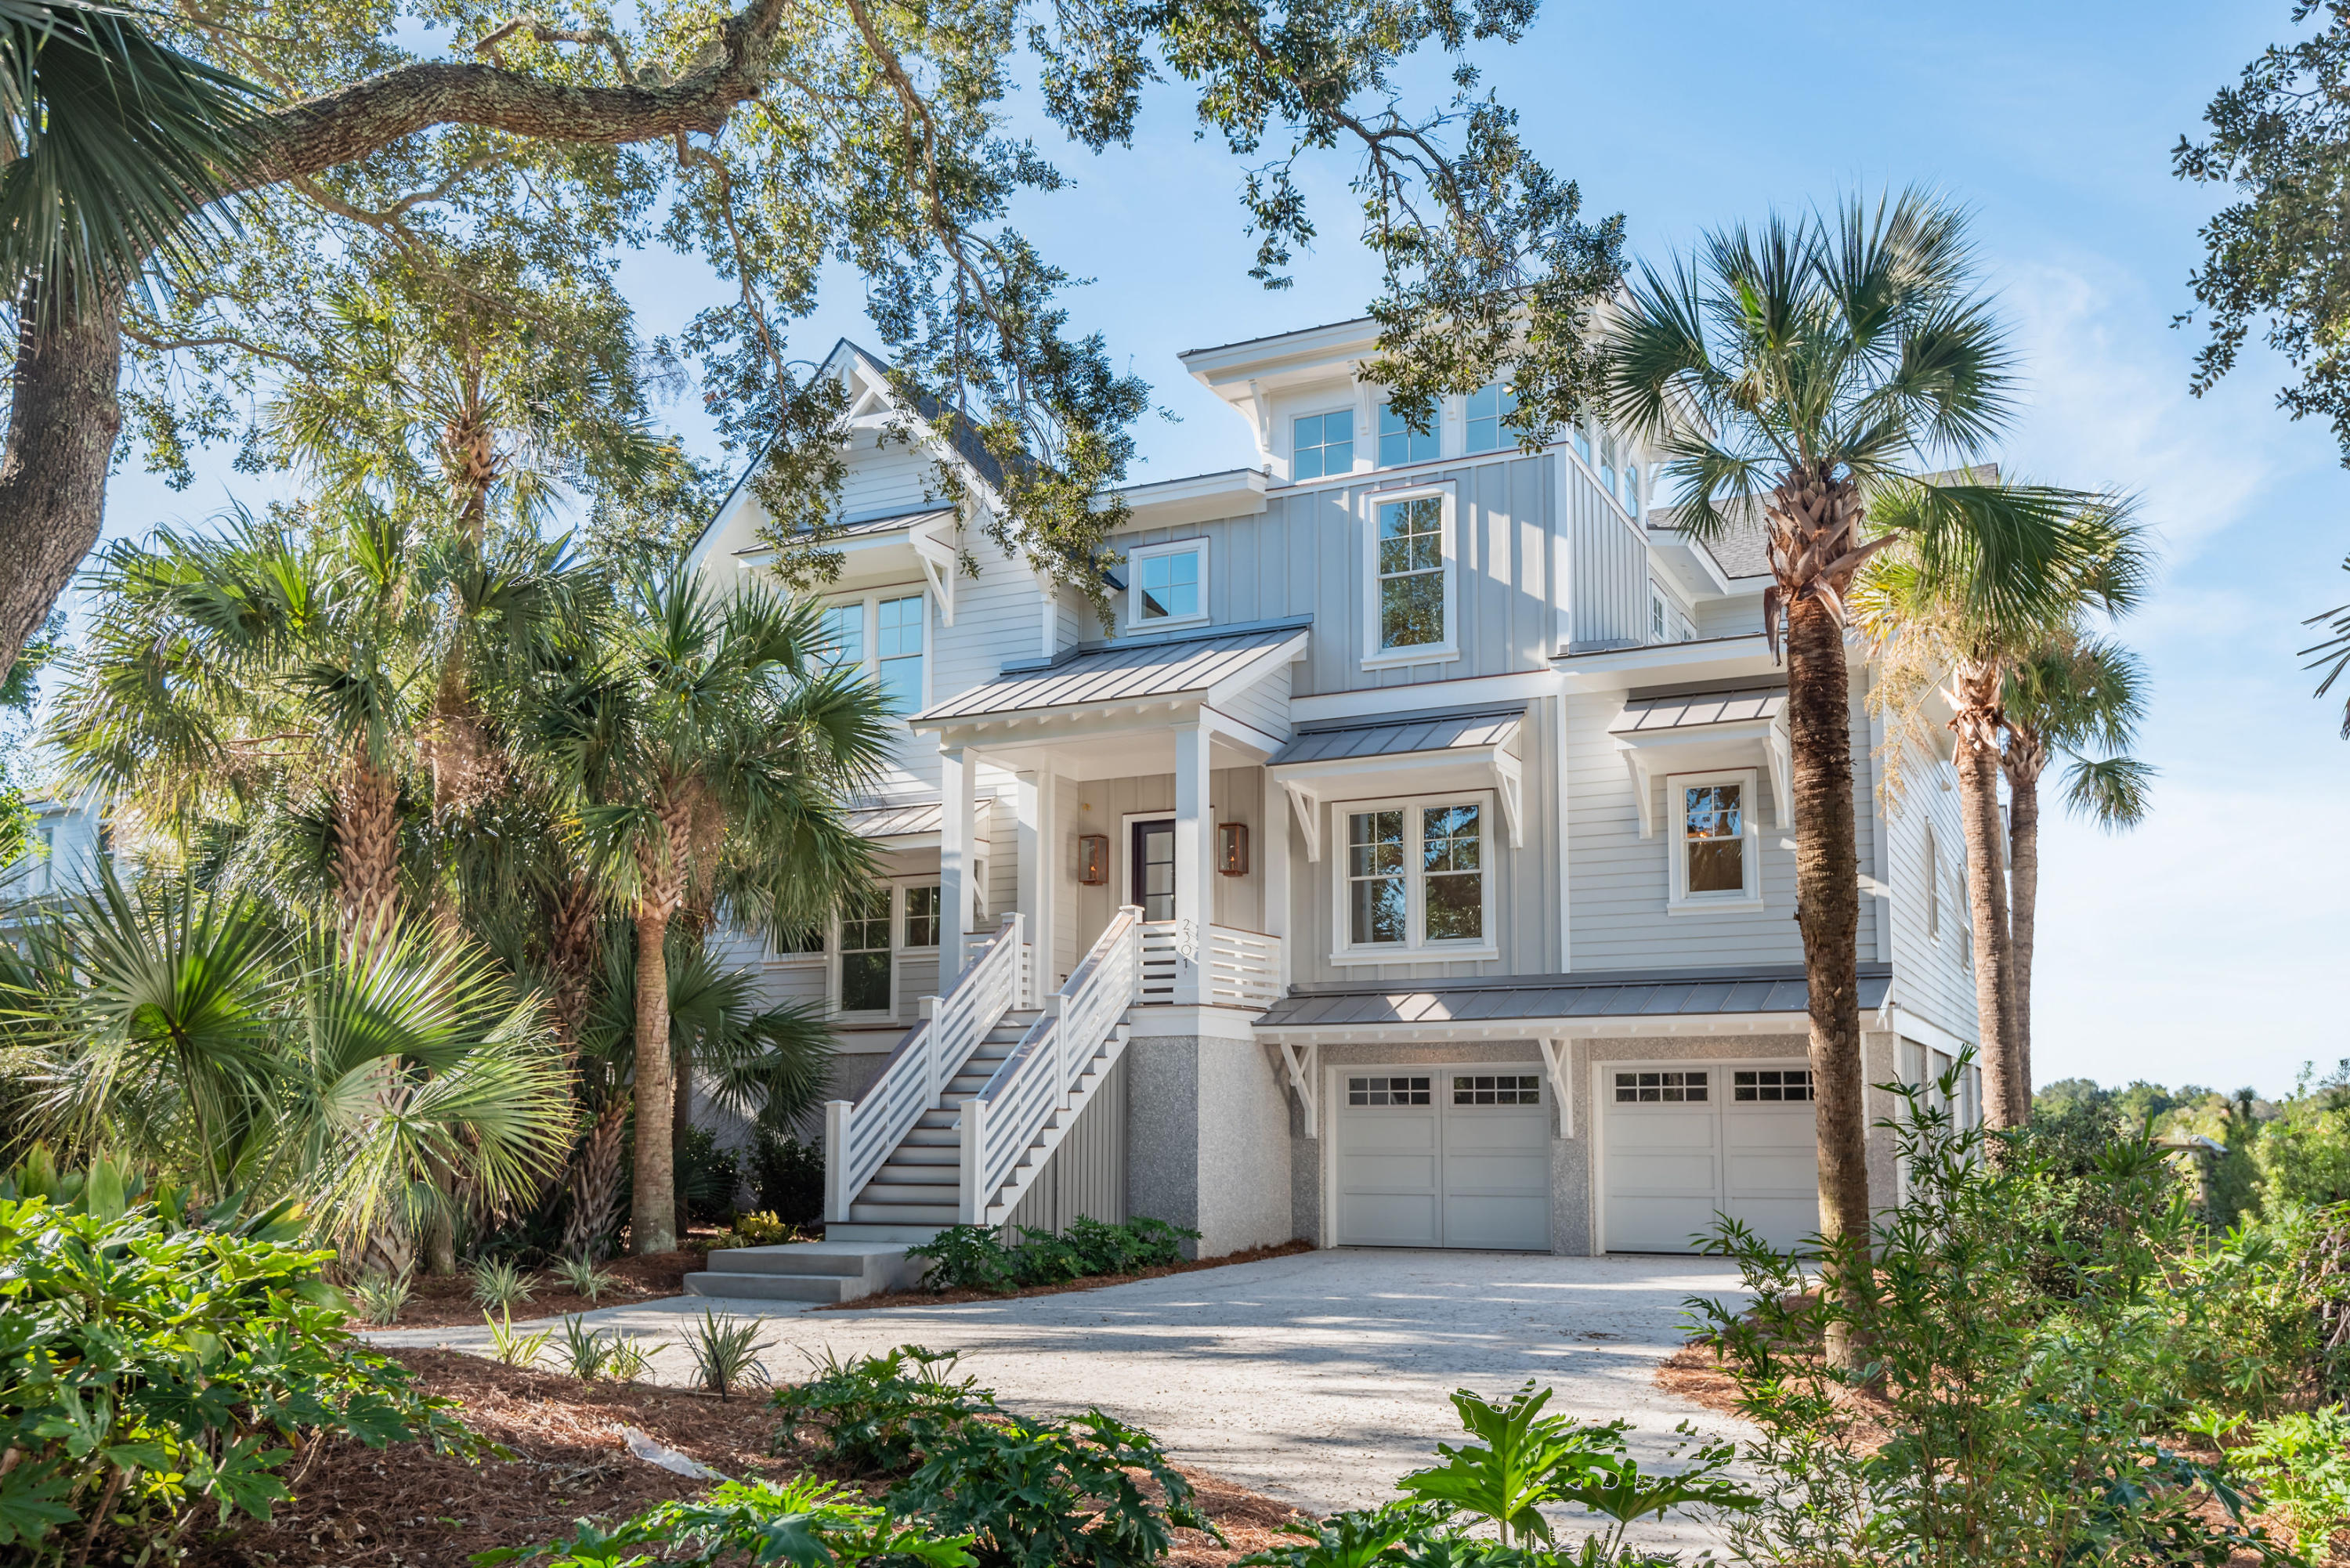 Photo of 2301 Waterway Blvd, Isle of Palms, SC 29451